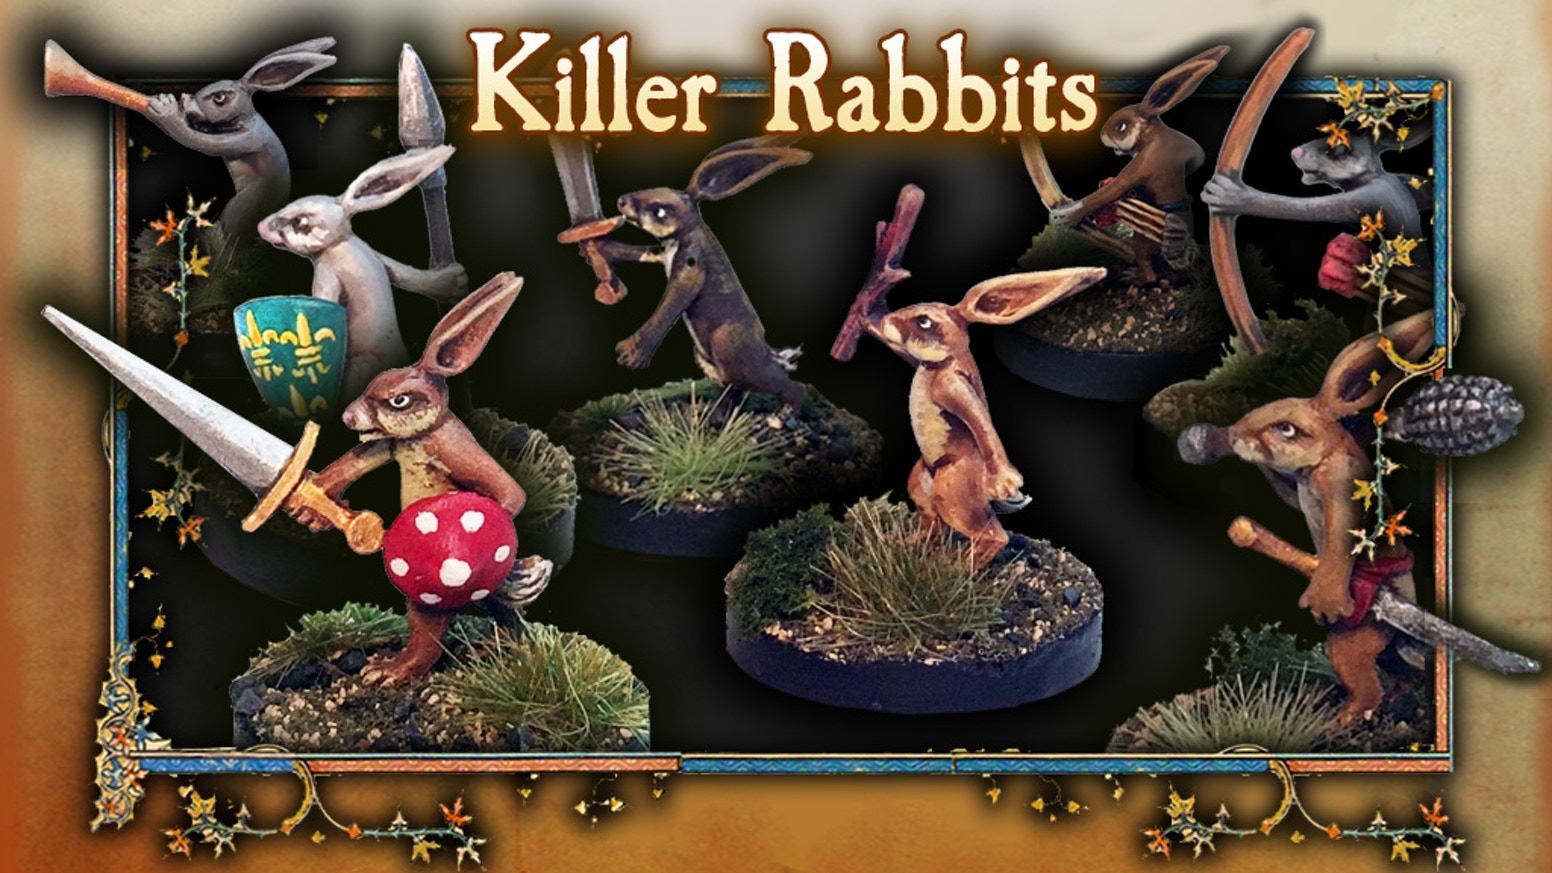 The most unexpected enemy! The most vindictive, and surprising foes to challenge your players on the tabletop. Killer Rabbits!